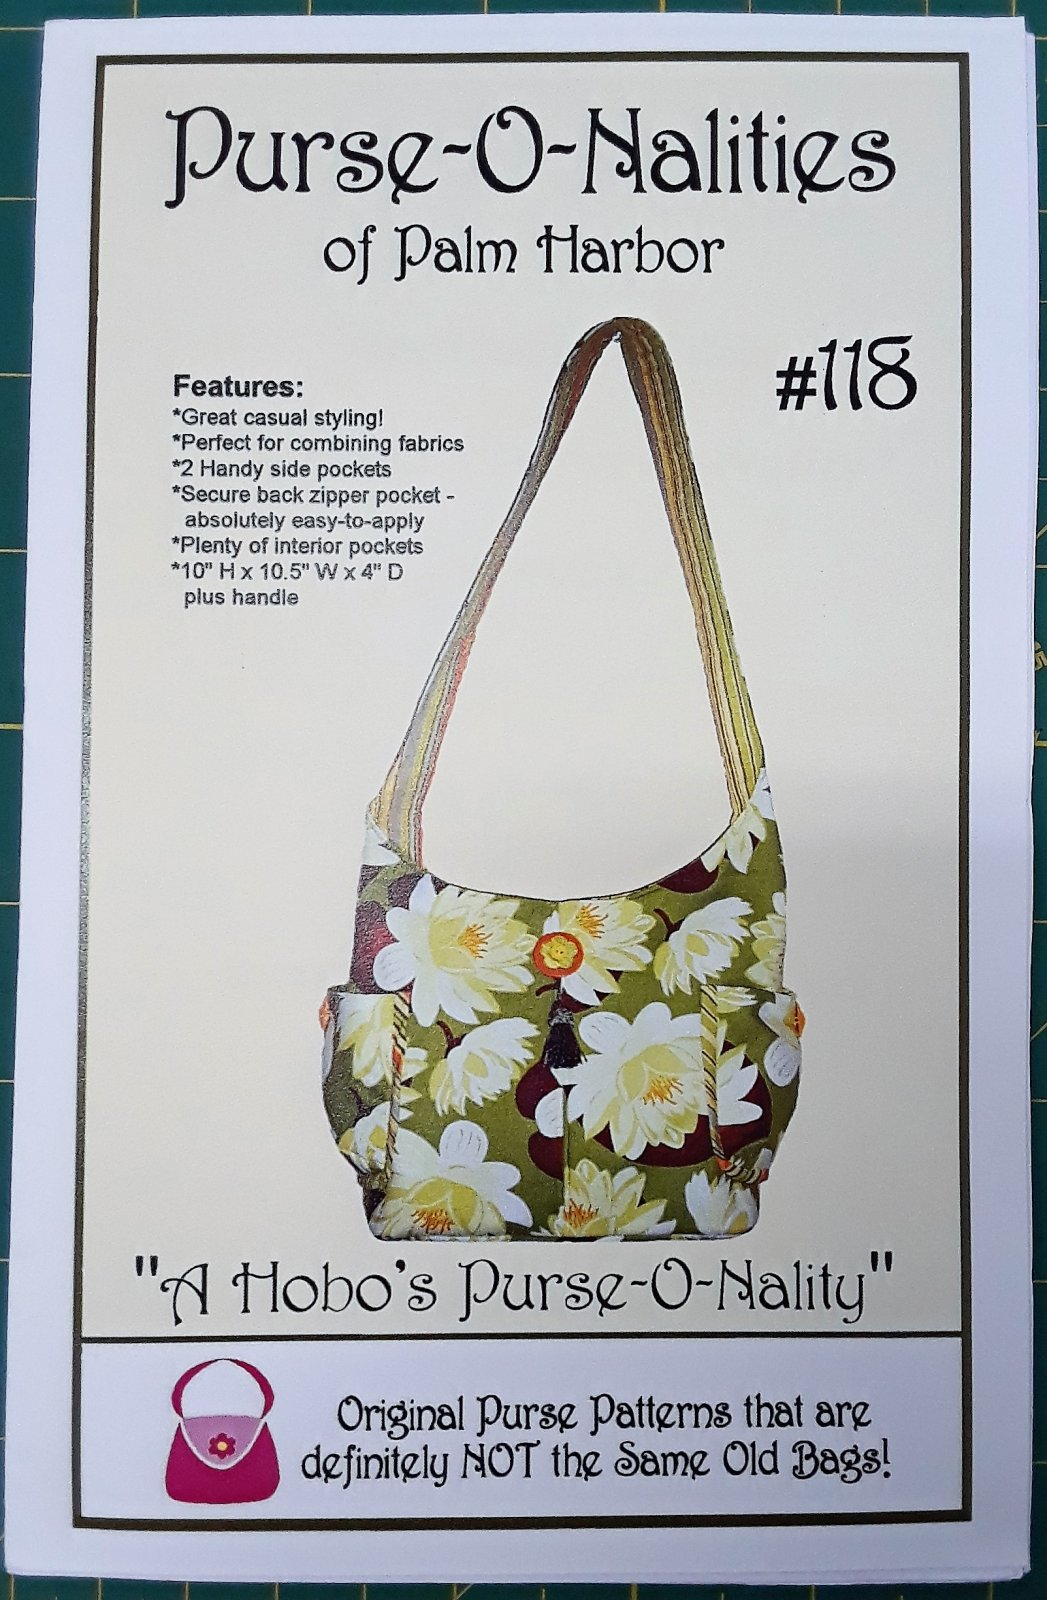 A Hobo's Purse-O-Nality